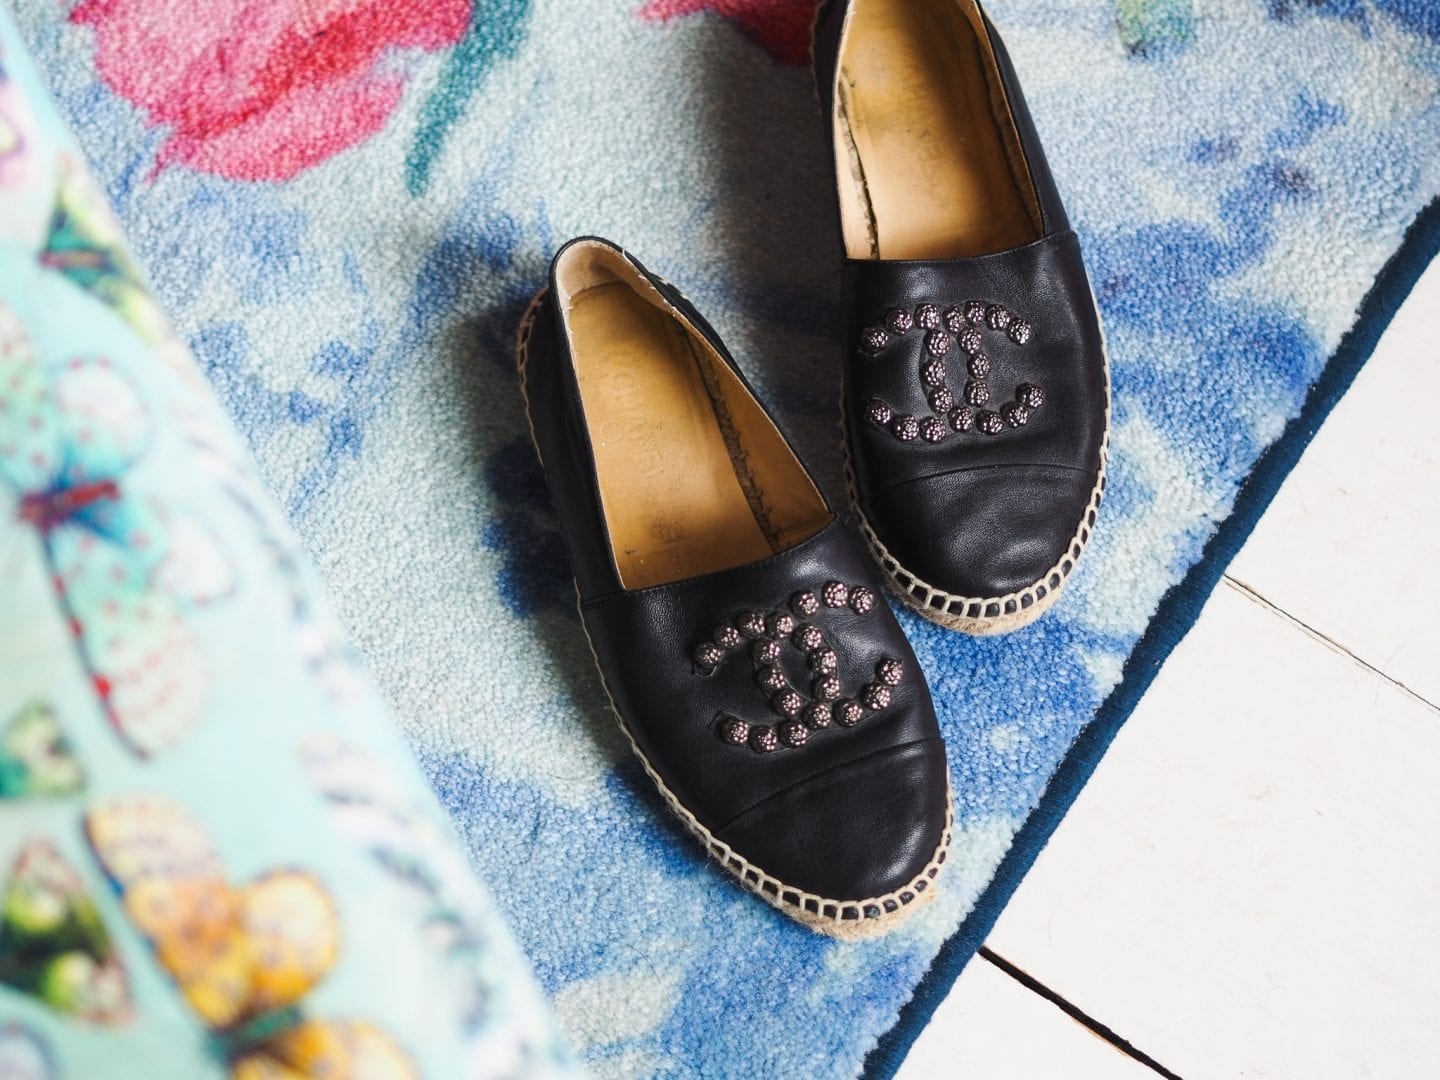 chanel-espadrilles-review-well-worn-review-2021-black-leather